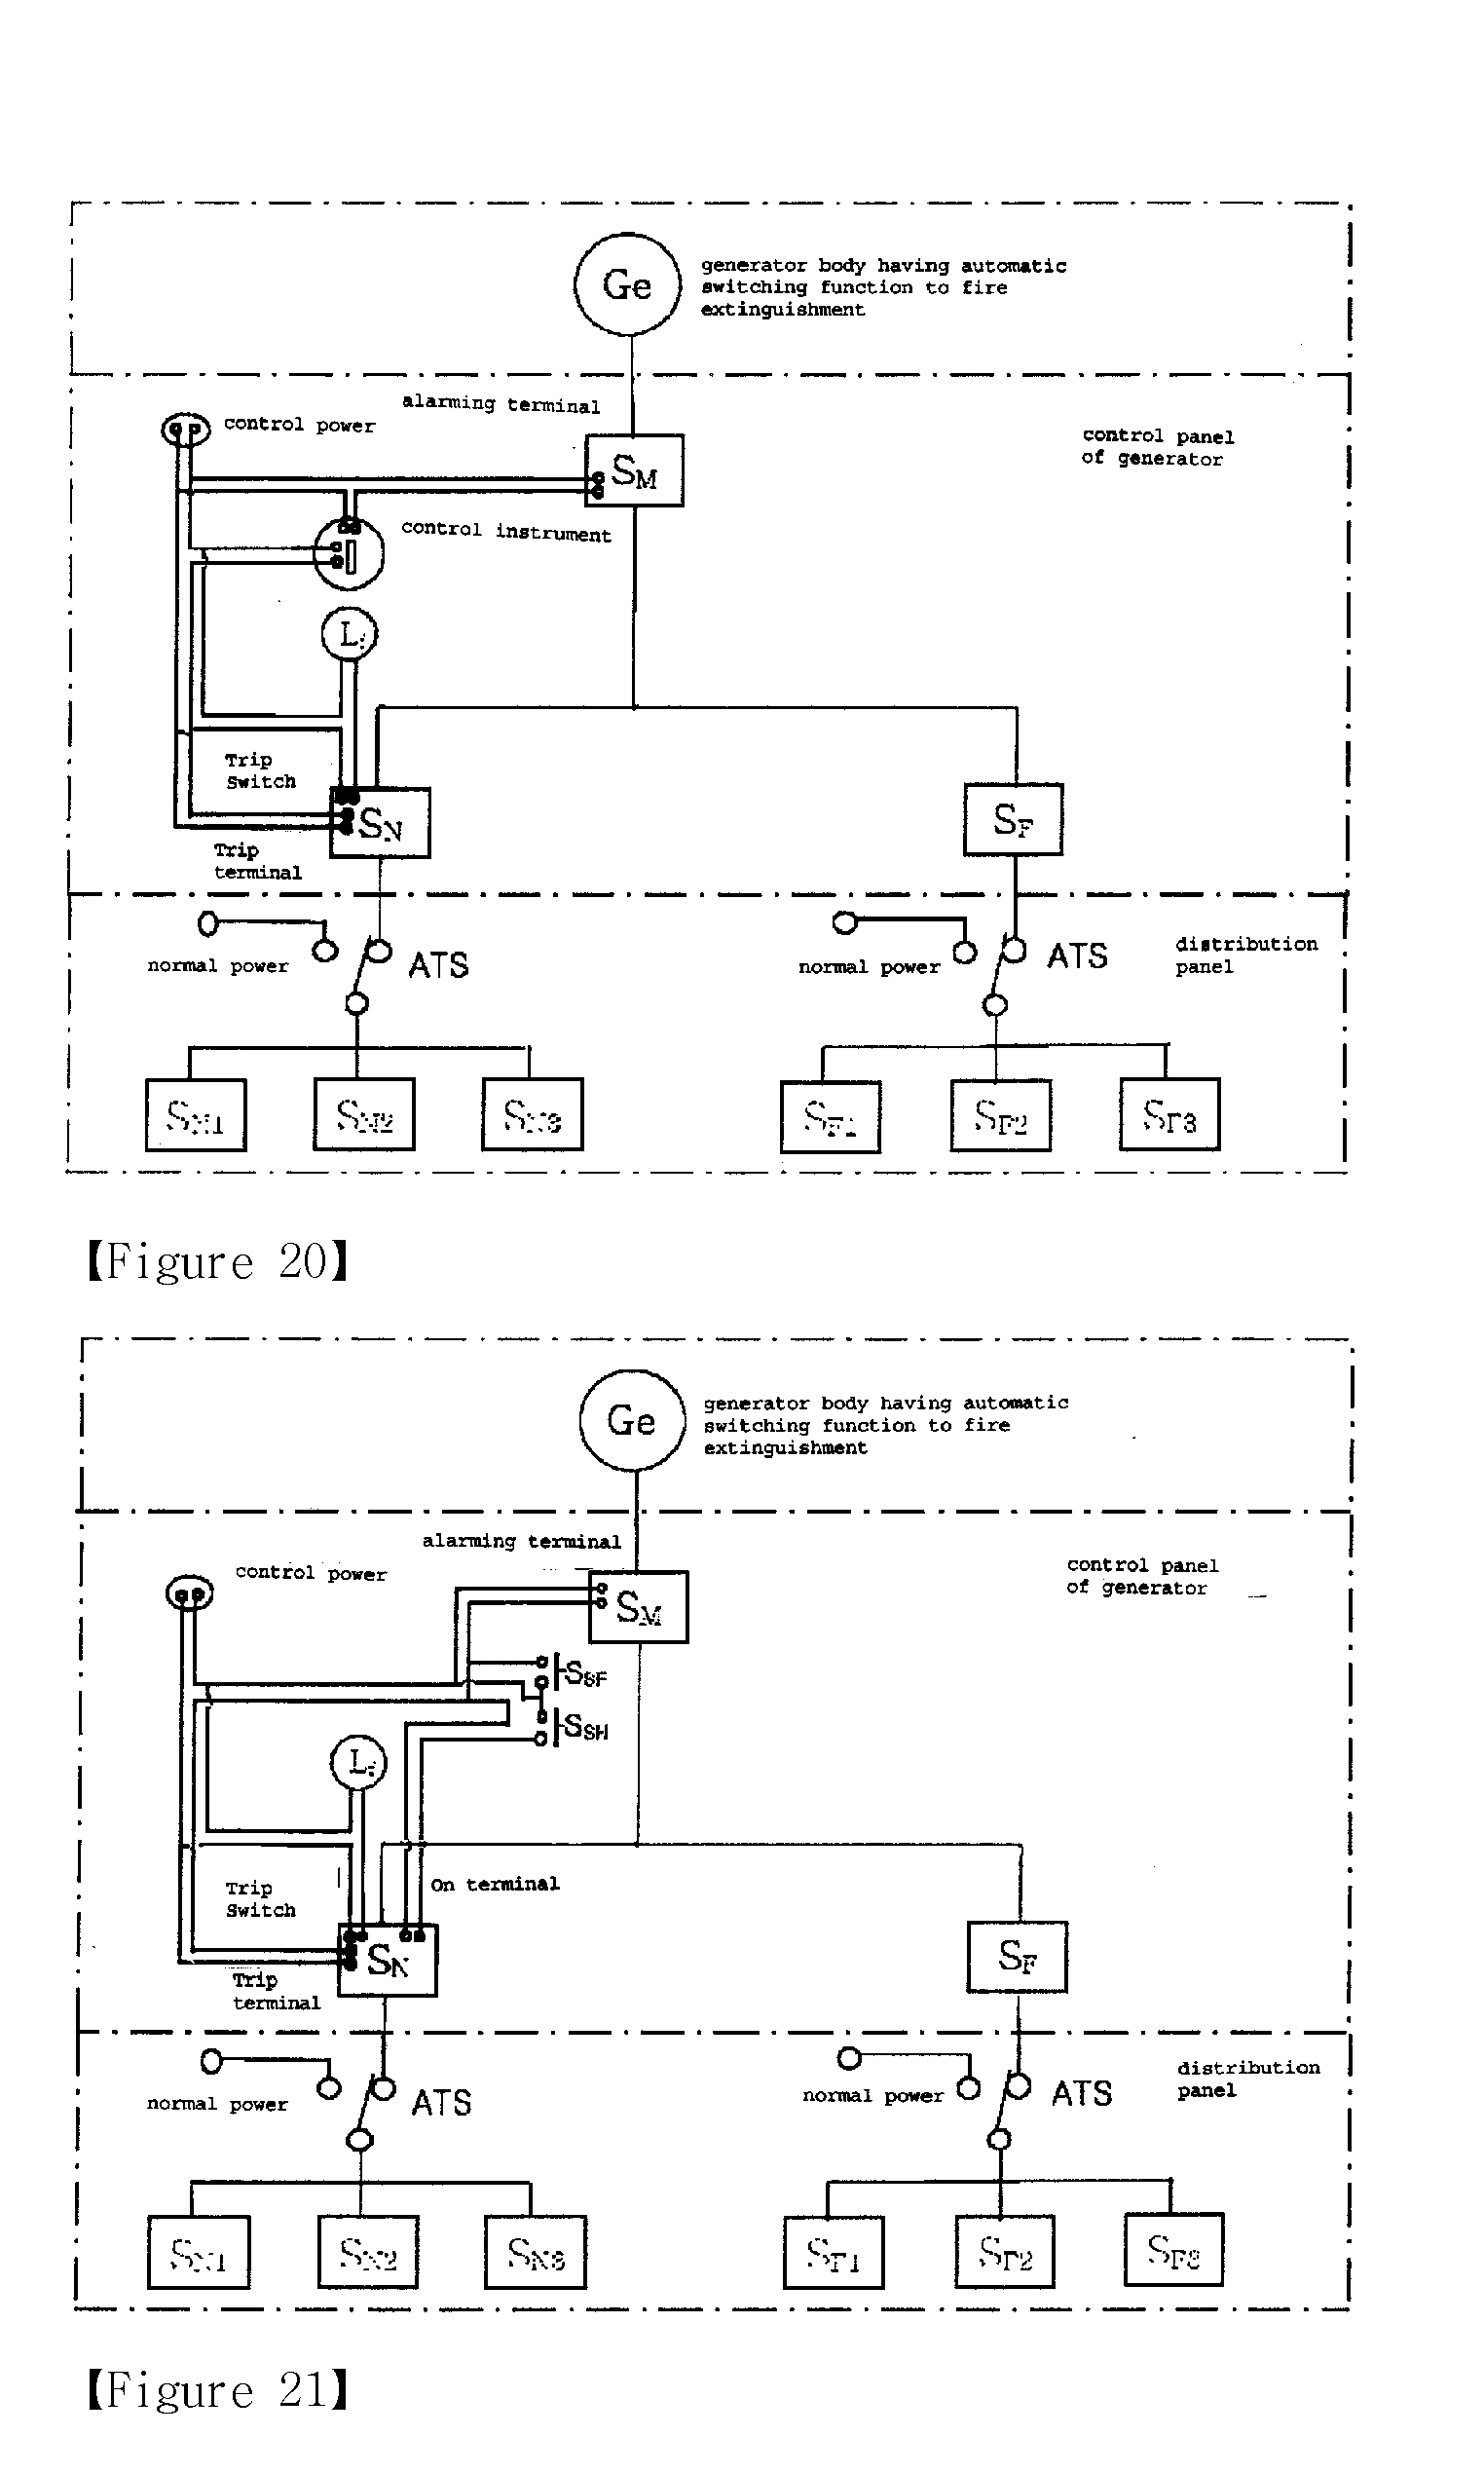 water flow switch wiring diagram Download-Tamper and Flow Switch Wiring Diagrams Unique Switch Symbols Wiring Diagram Ponents 18-q